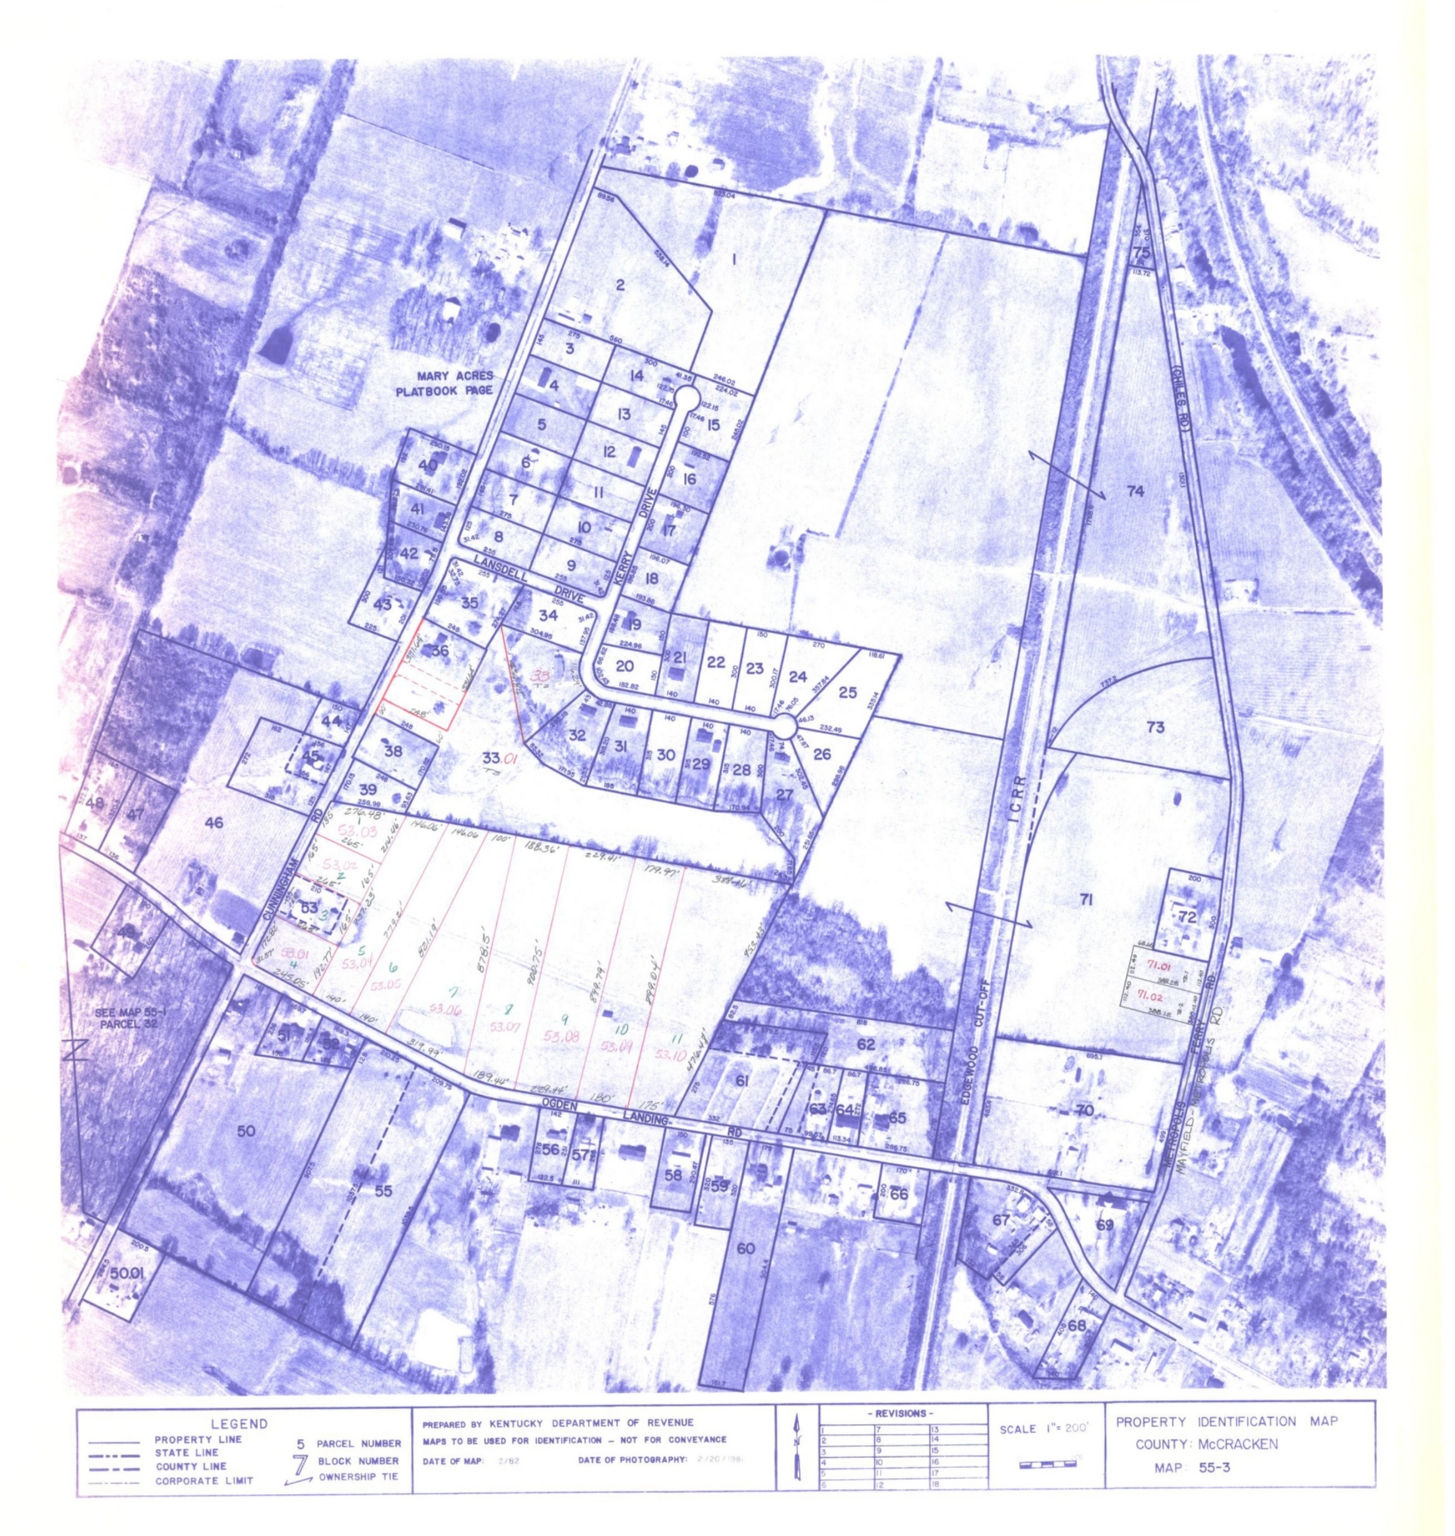 Property Identification Map McCracken County, Map 55-3